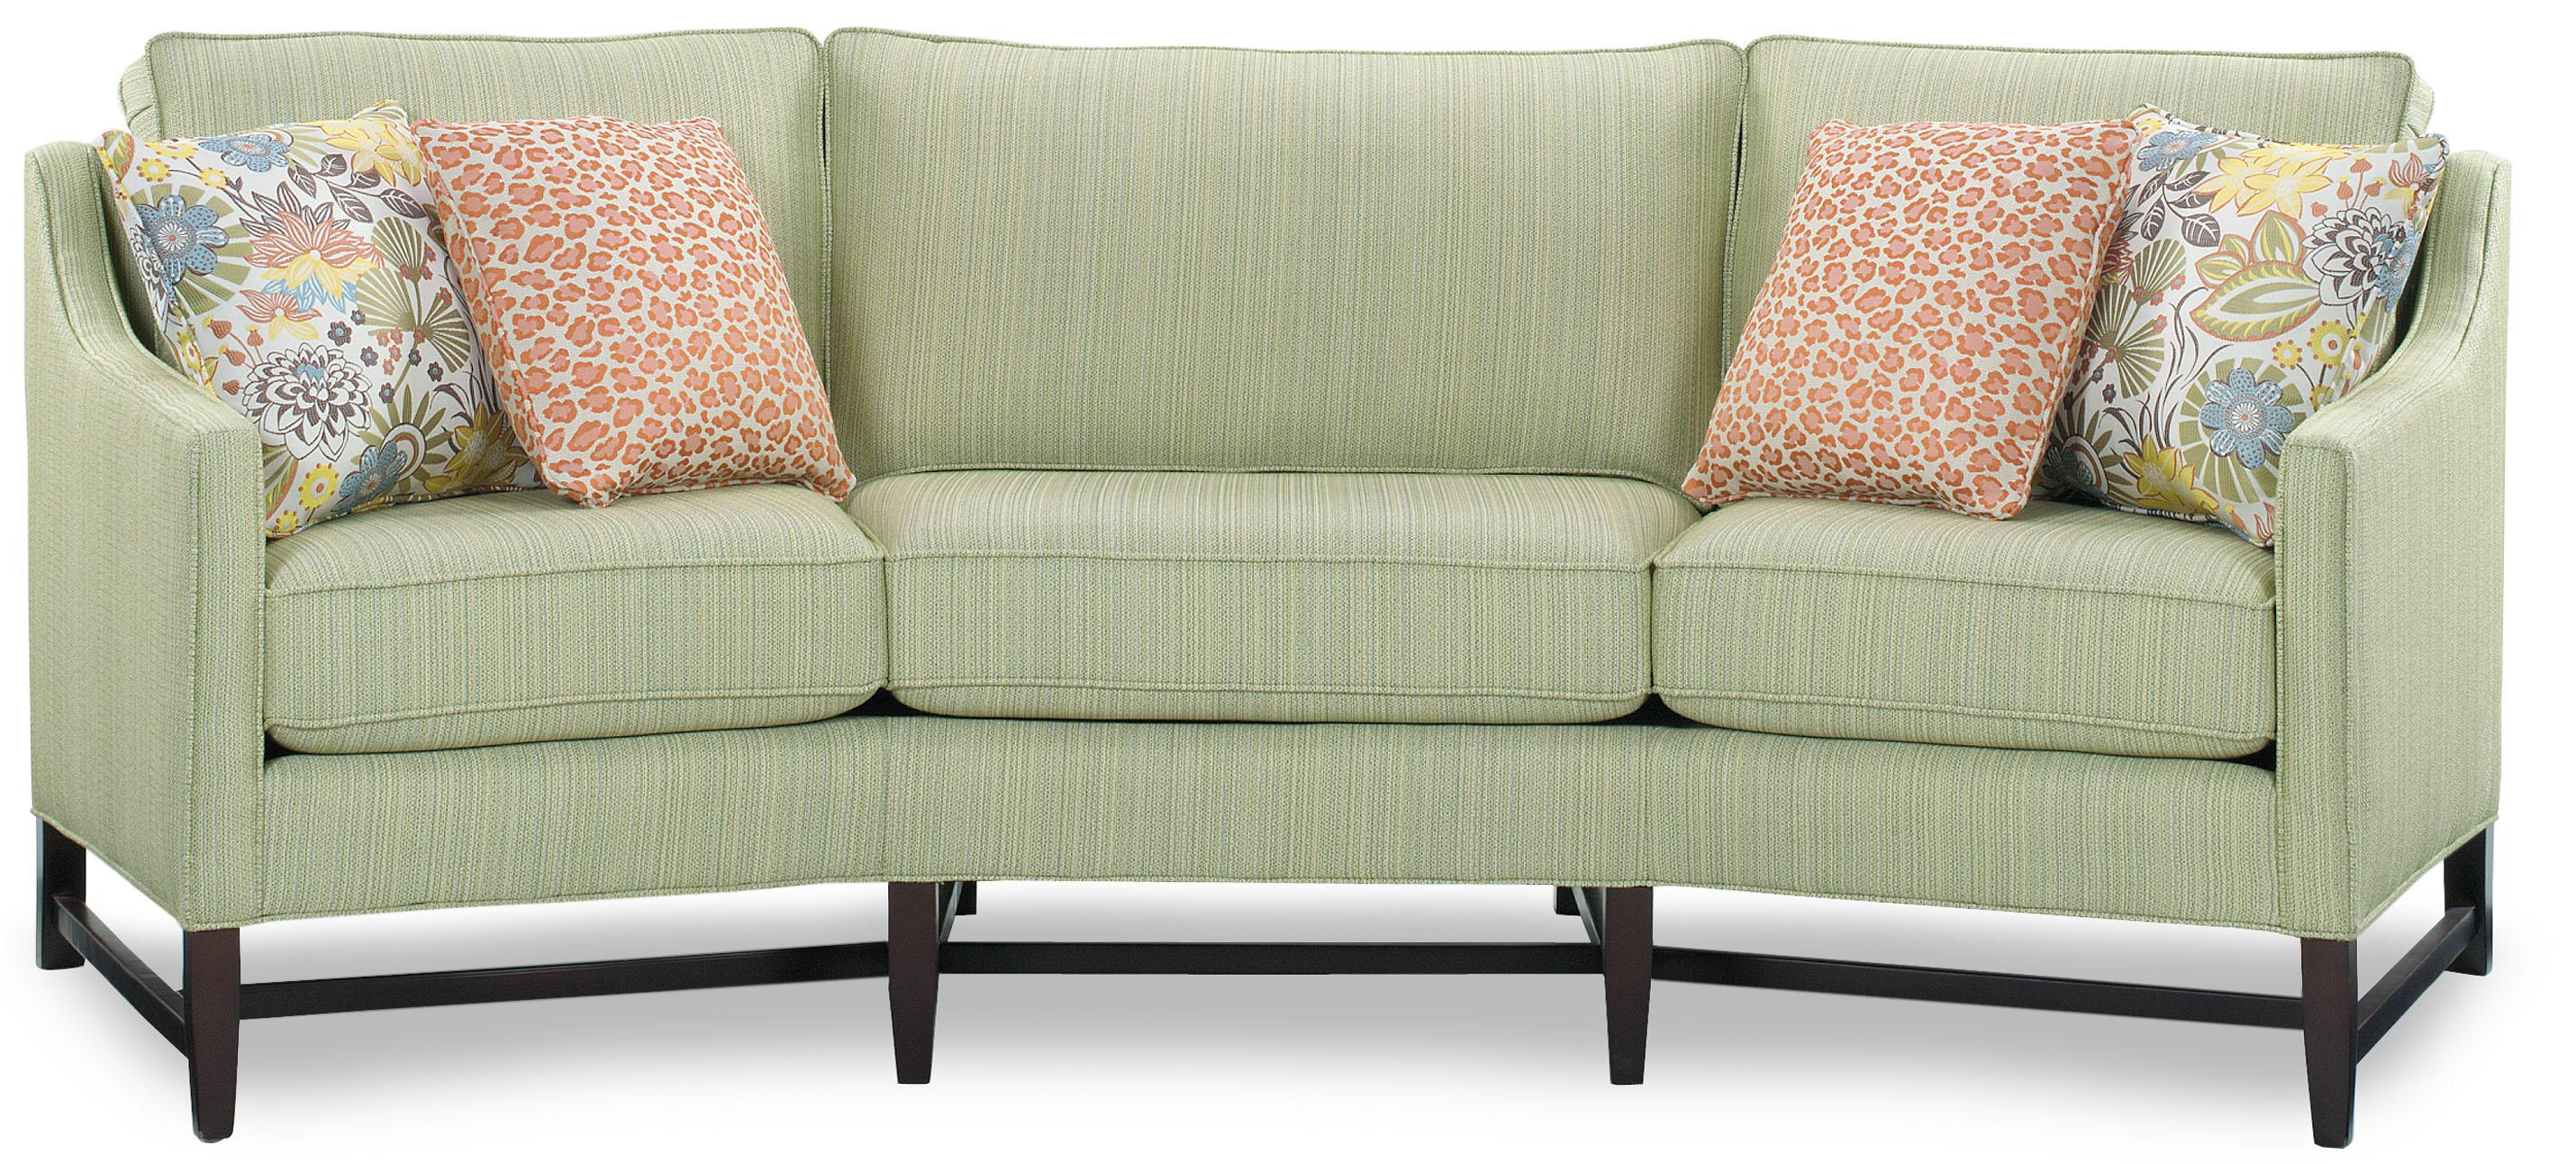 Sassy Conversation Sofa by Temple Furniture at Mueller Furniture